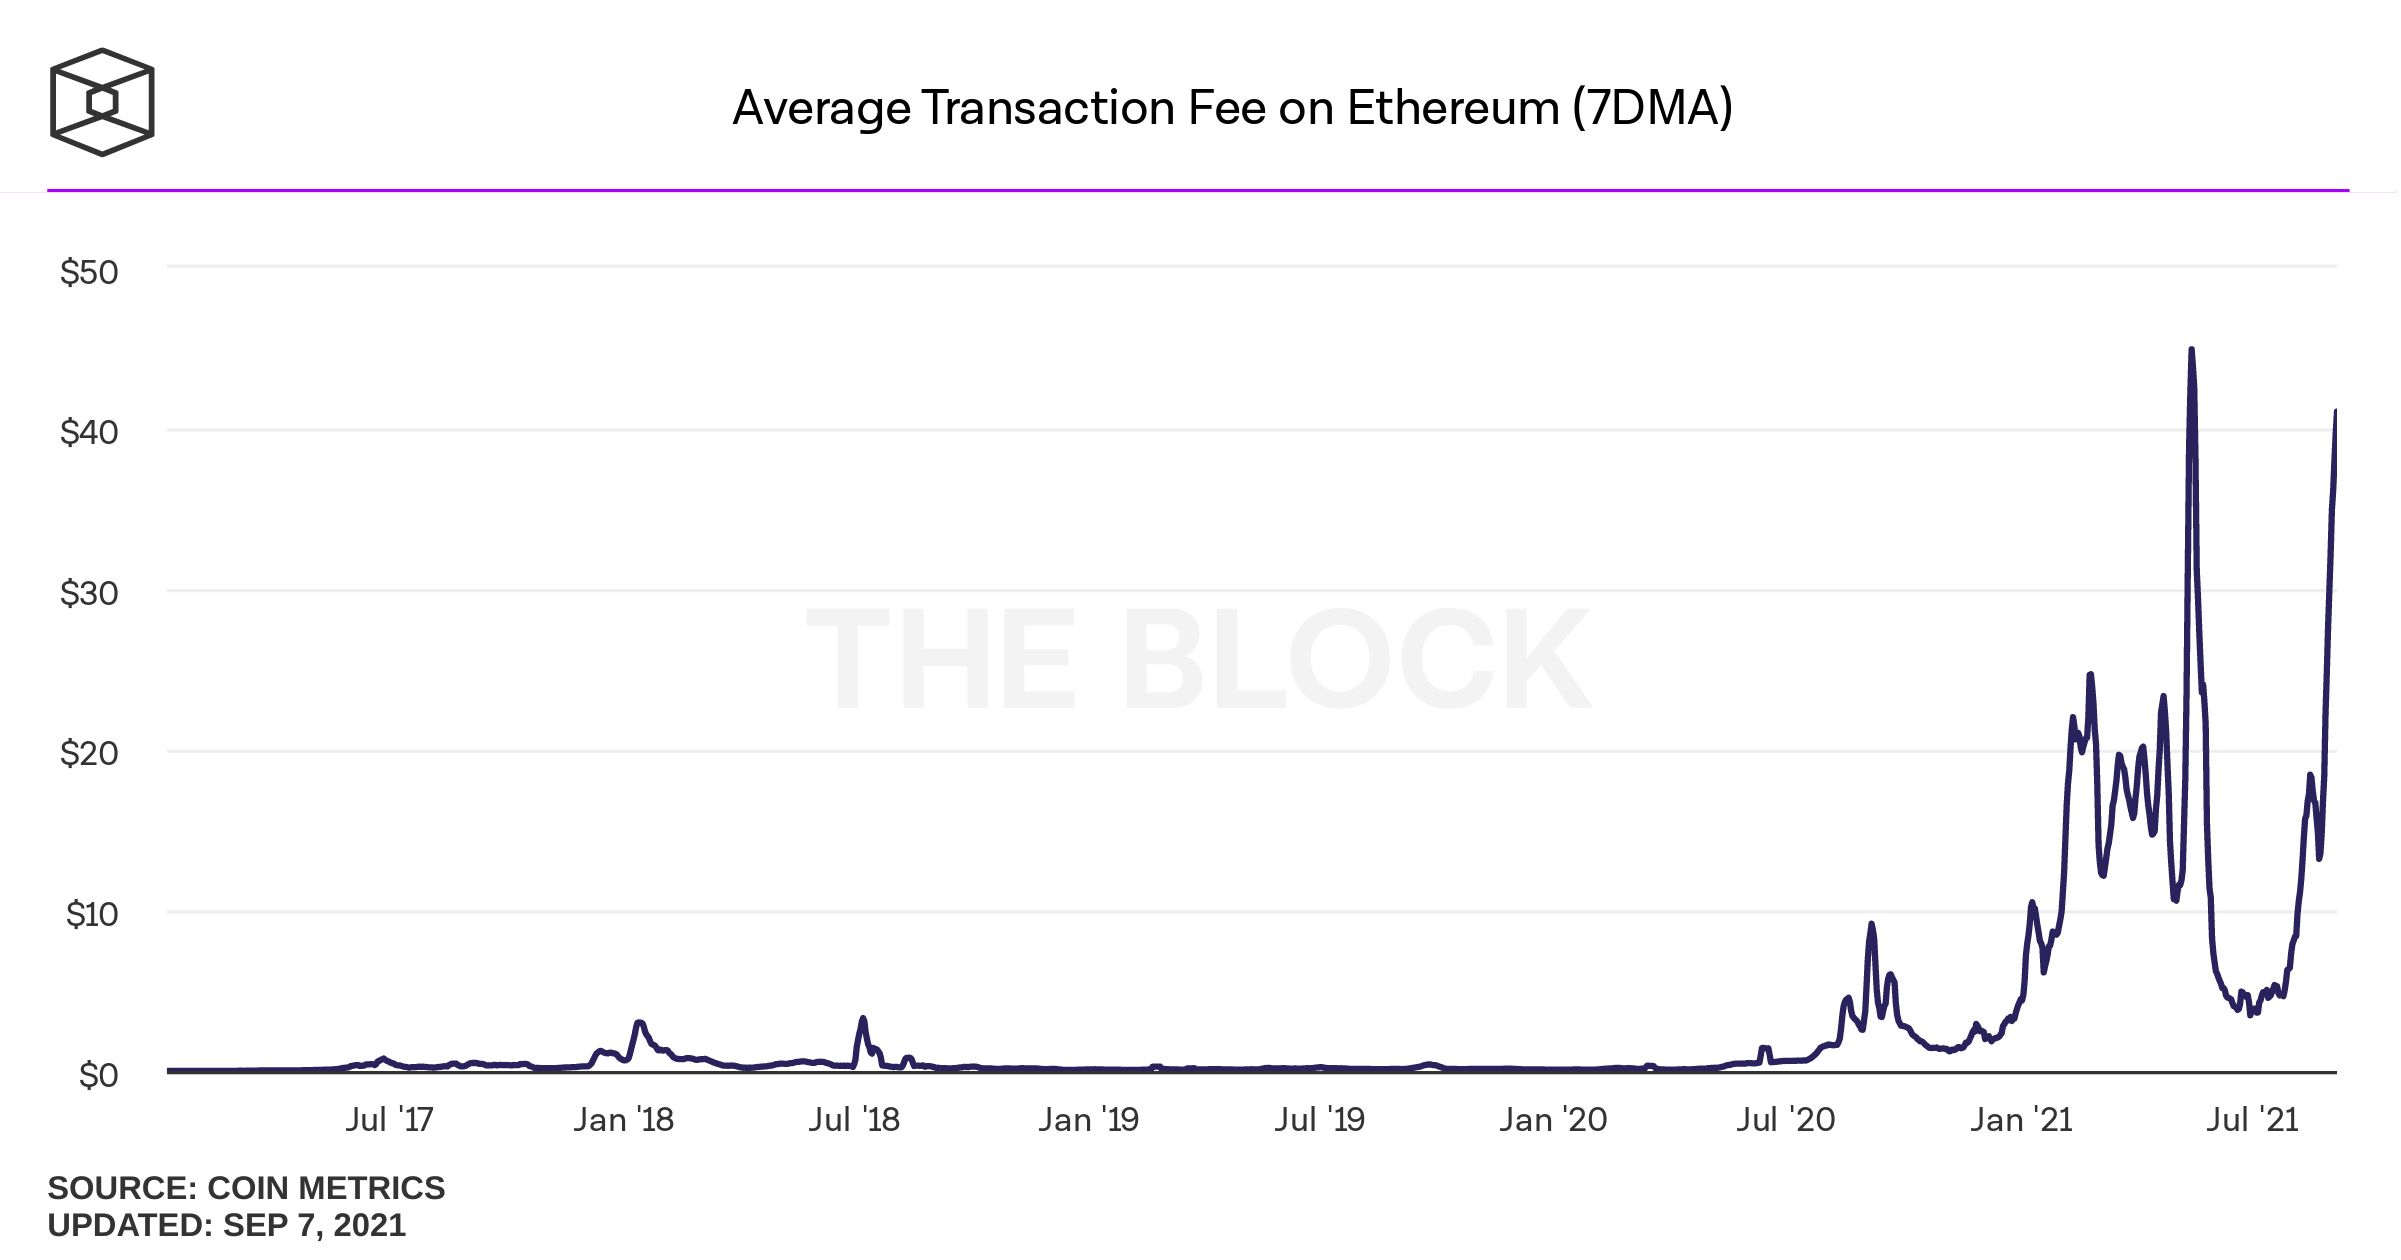 Ethereum deflation is picking up speed - Ether target price is $ 35,000